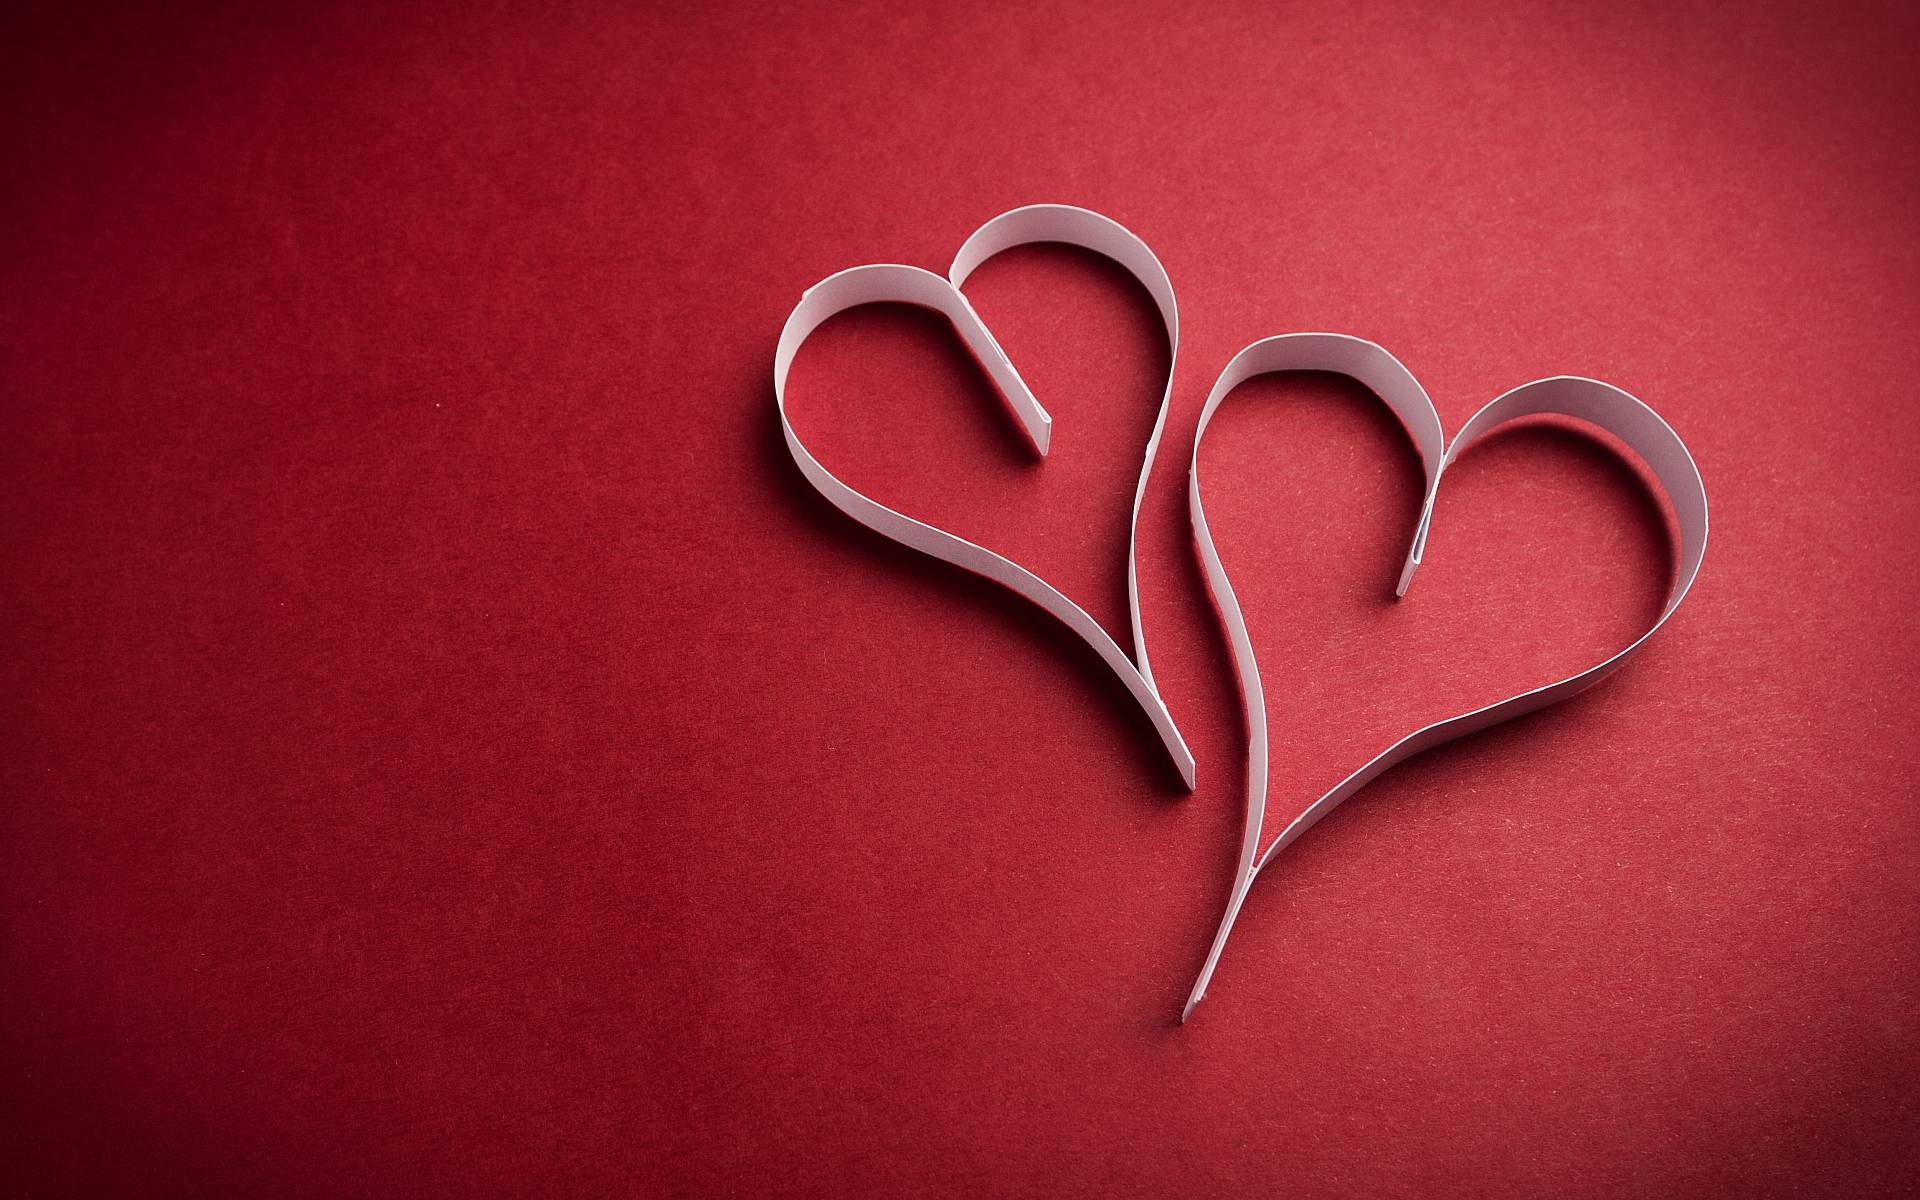 Red hearts background wallpaper